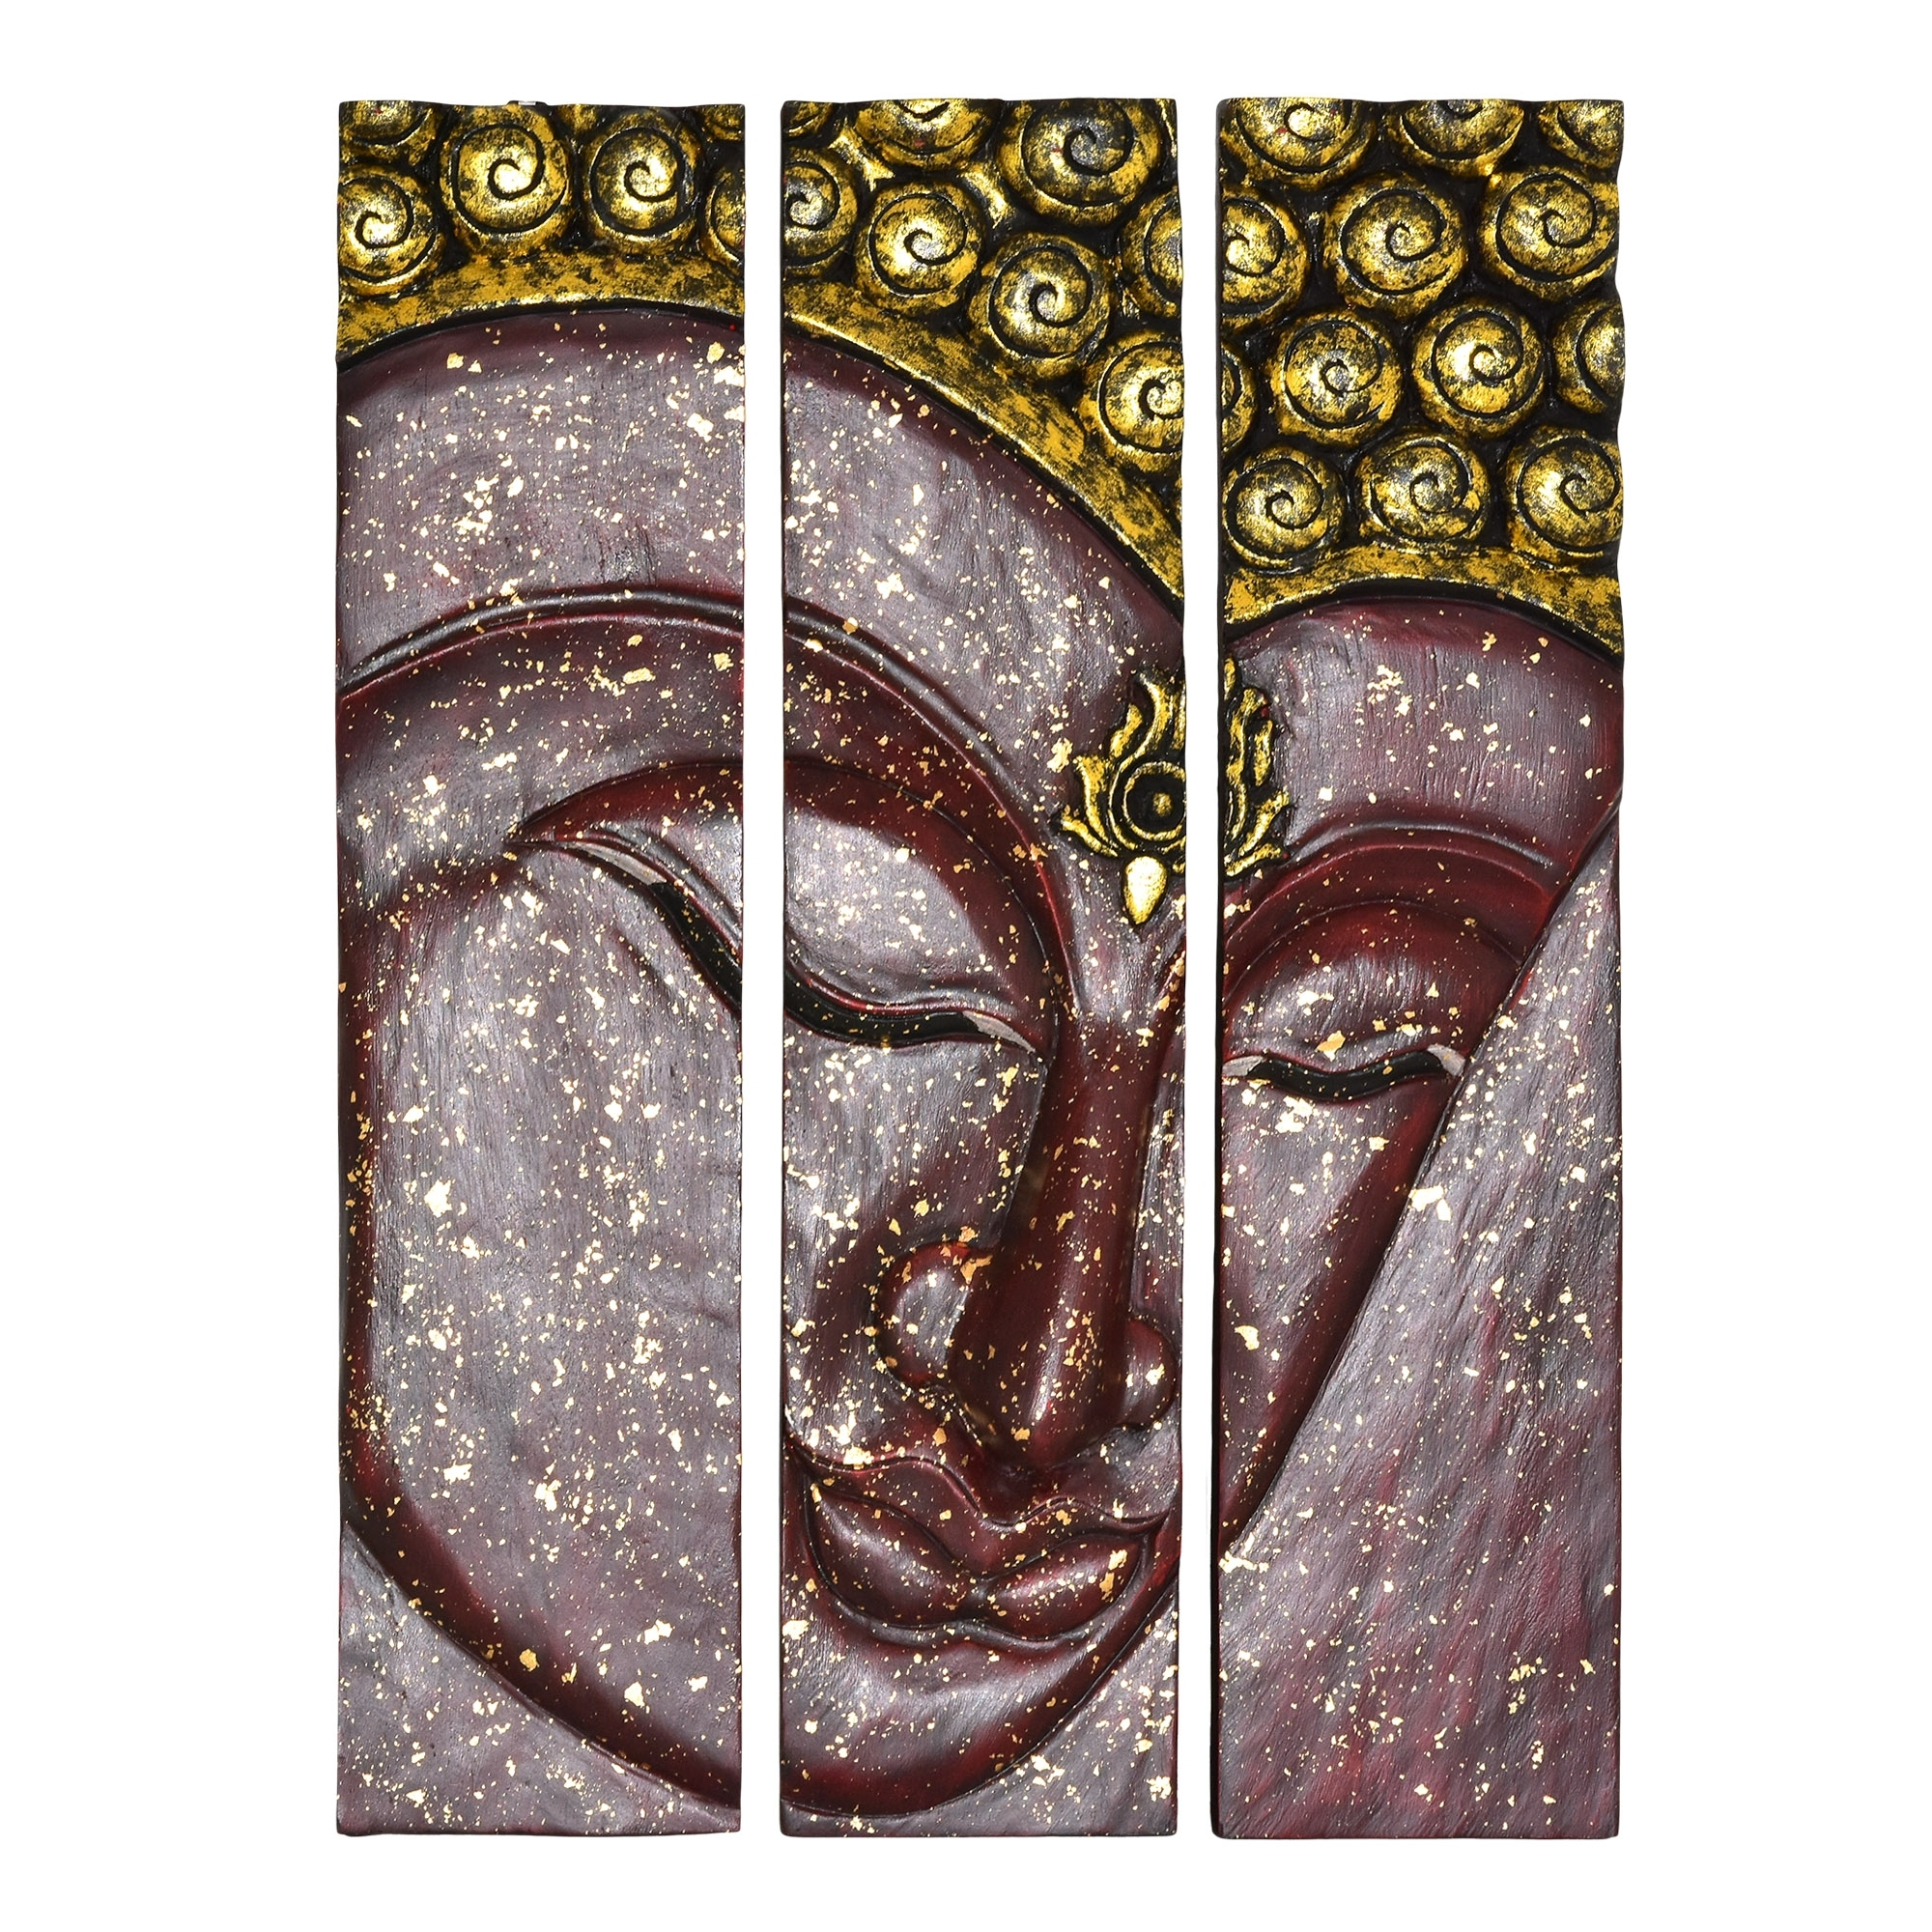 Golden Red Buddha Face Three Panel Hand Carved Wood Wall Art 20x30 Intended For Most Recent Carved Wood Wall Art (View 15 of 15)